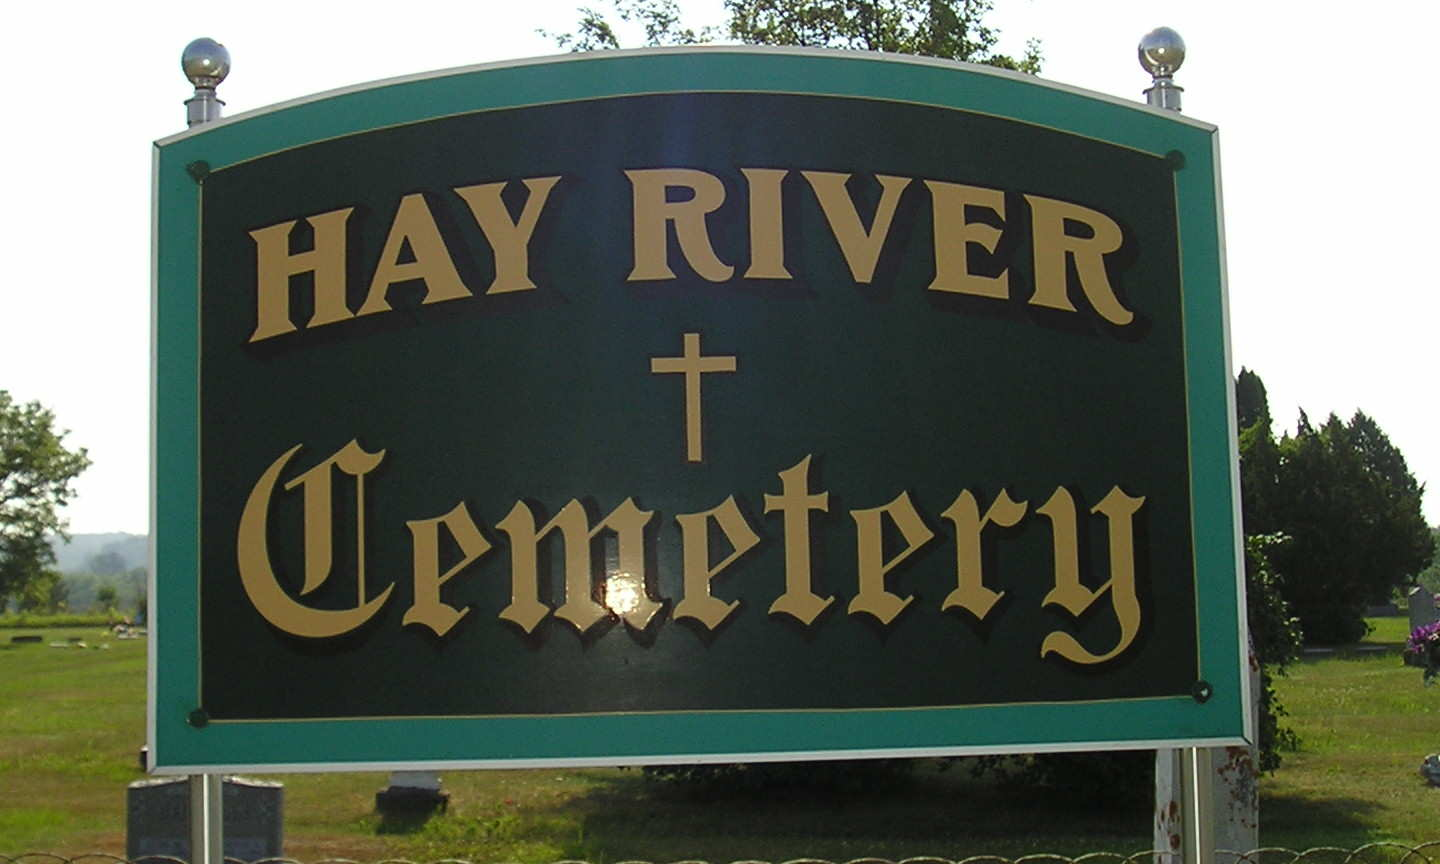 Hay River Township Cemetery